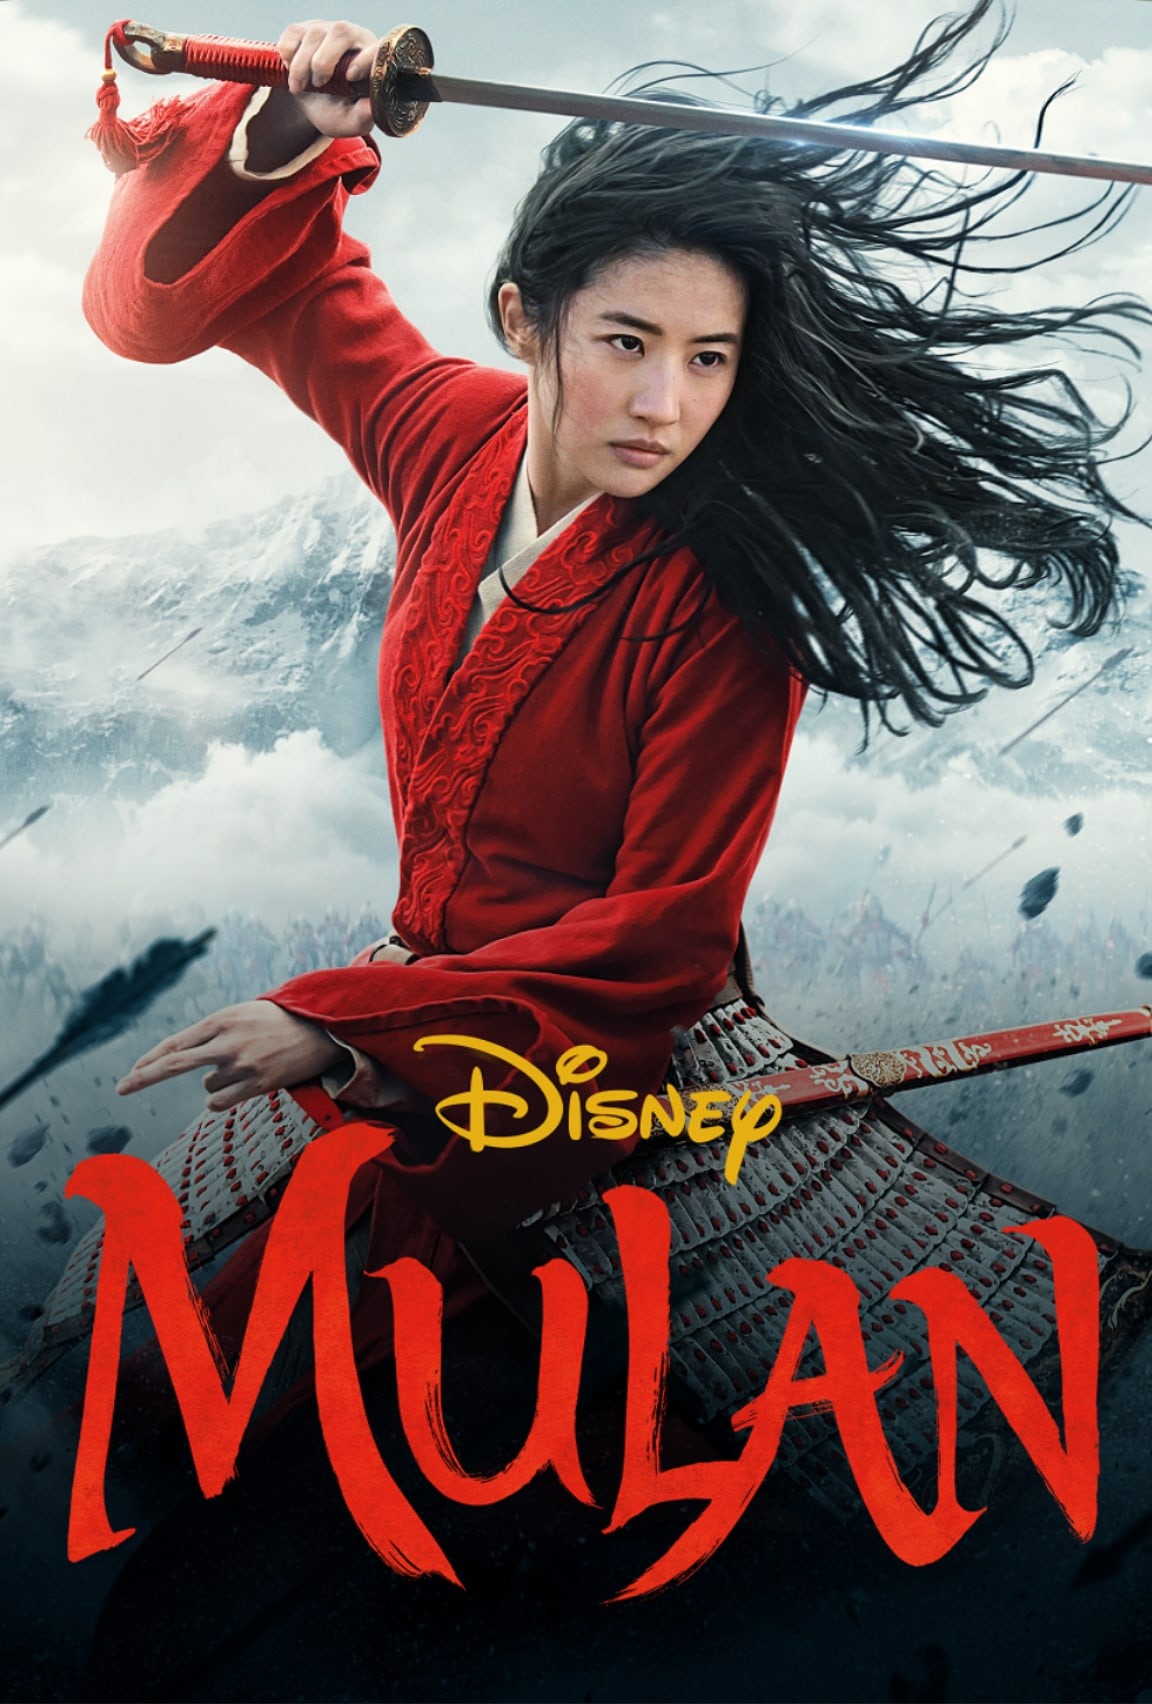 Mulan on Disney Plus